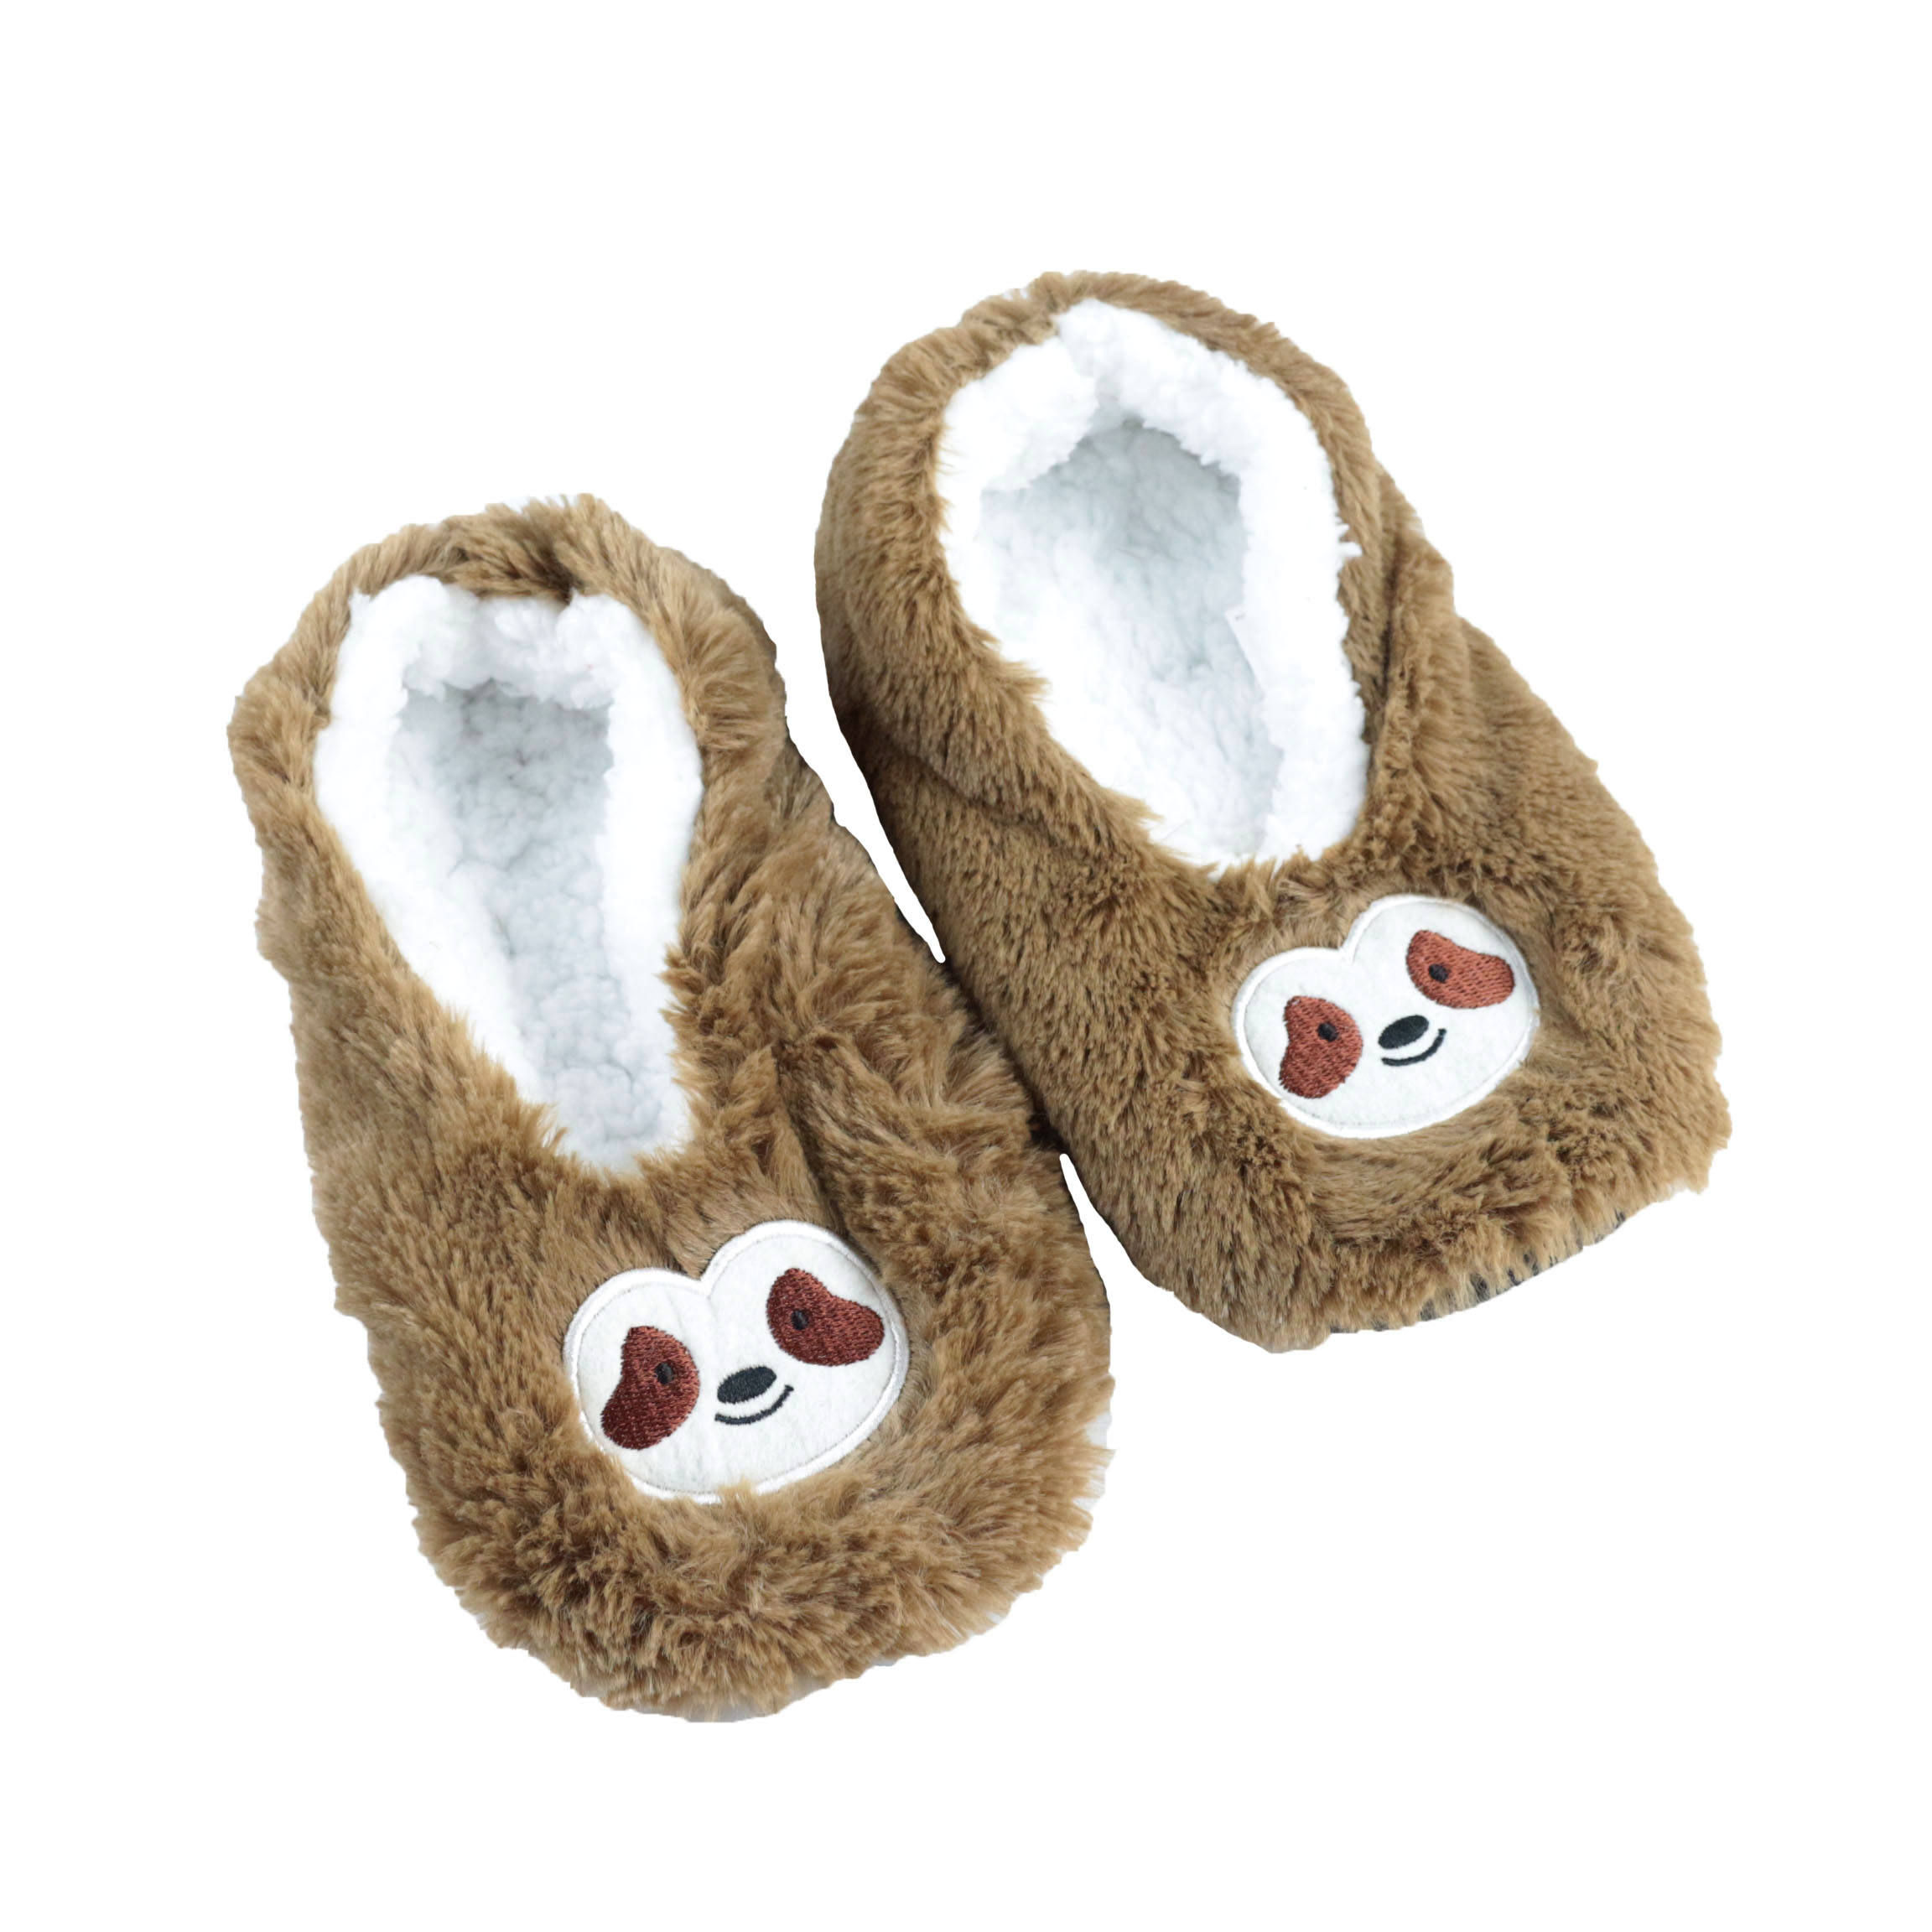 For Indoor [ Slippers Slipper ] Slipper Popular Animal Indoor Slippers Fur Slipper Non-slip Room Slipper Socks